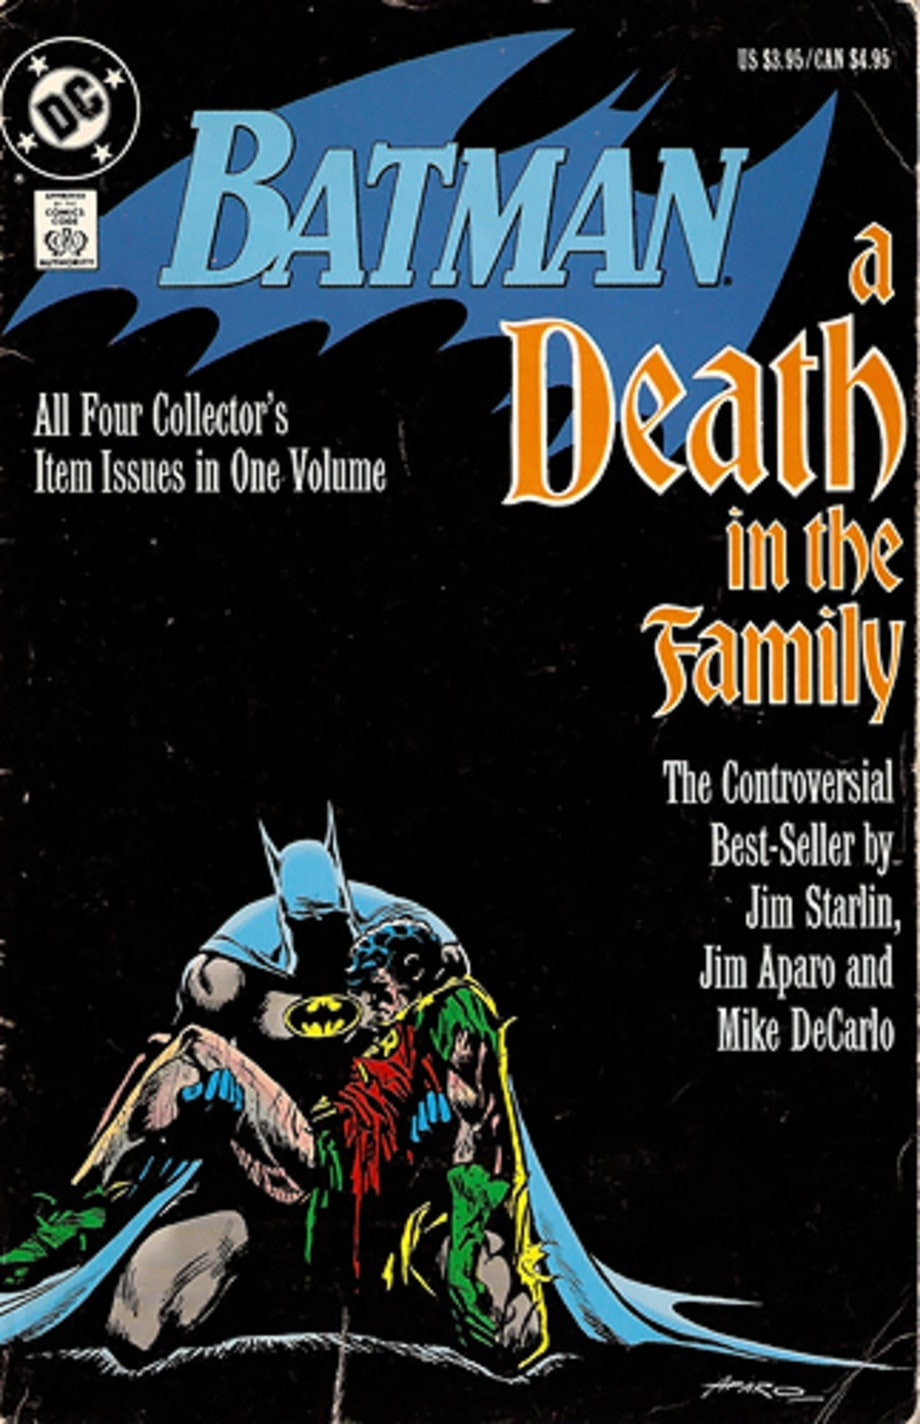 7. 'Batman: A Death in the Family'